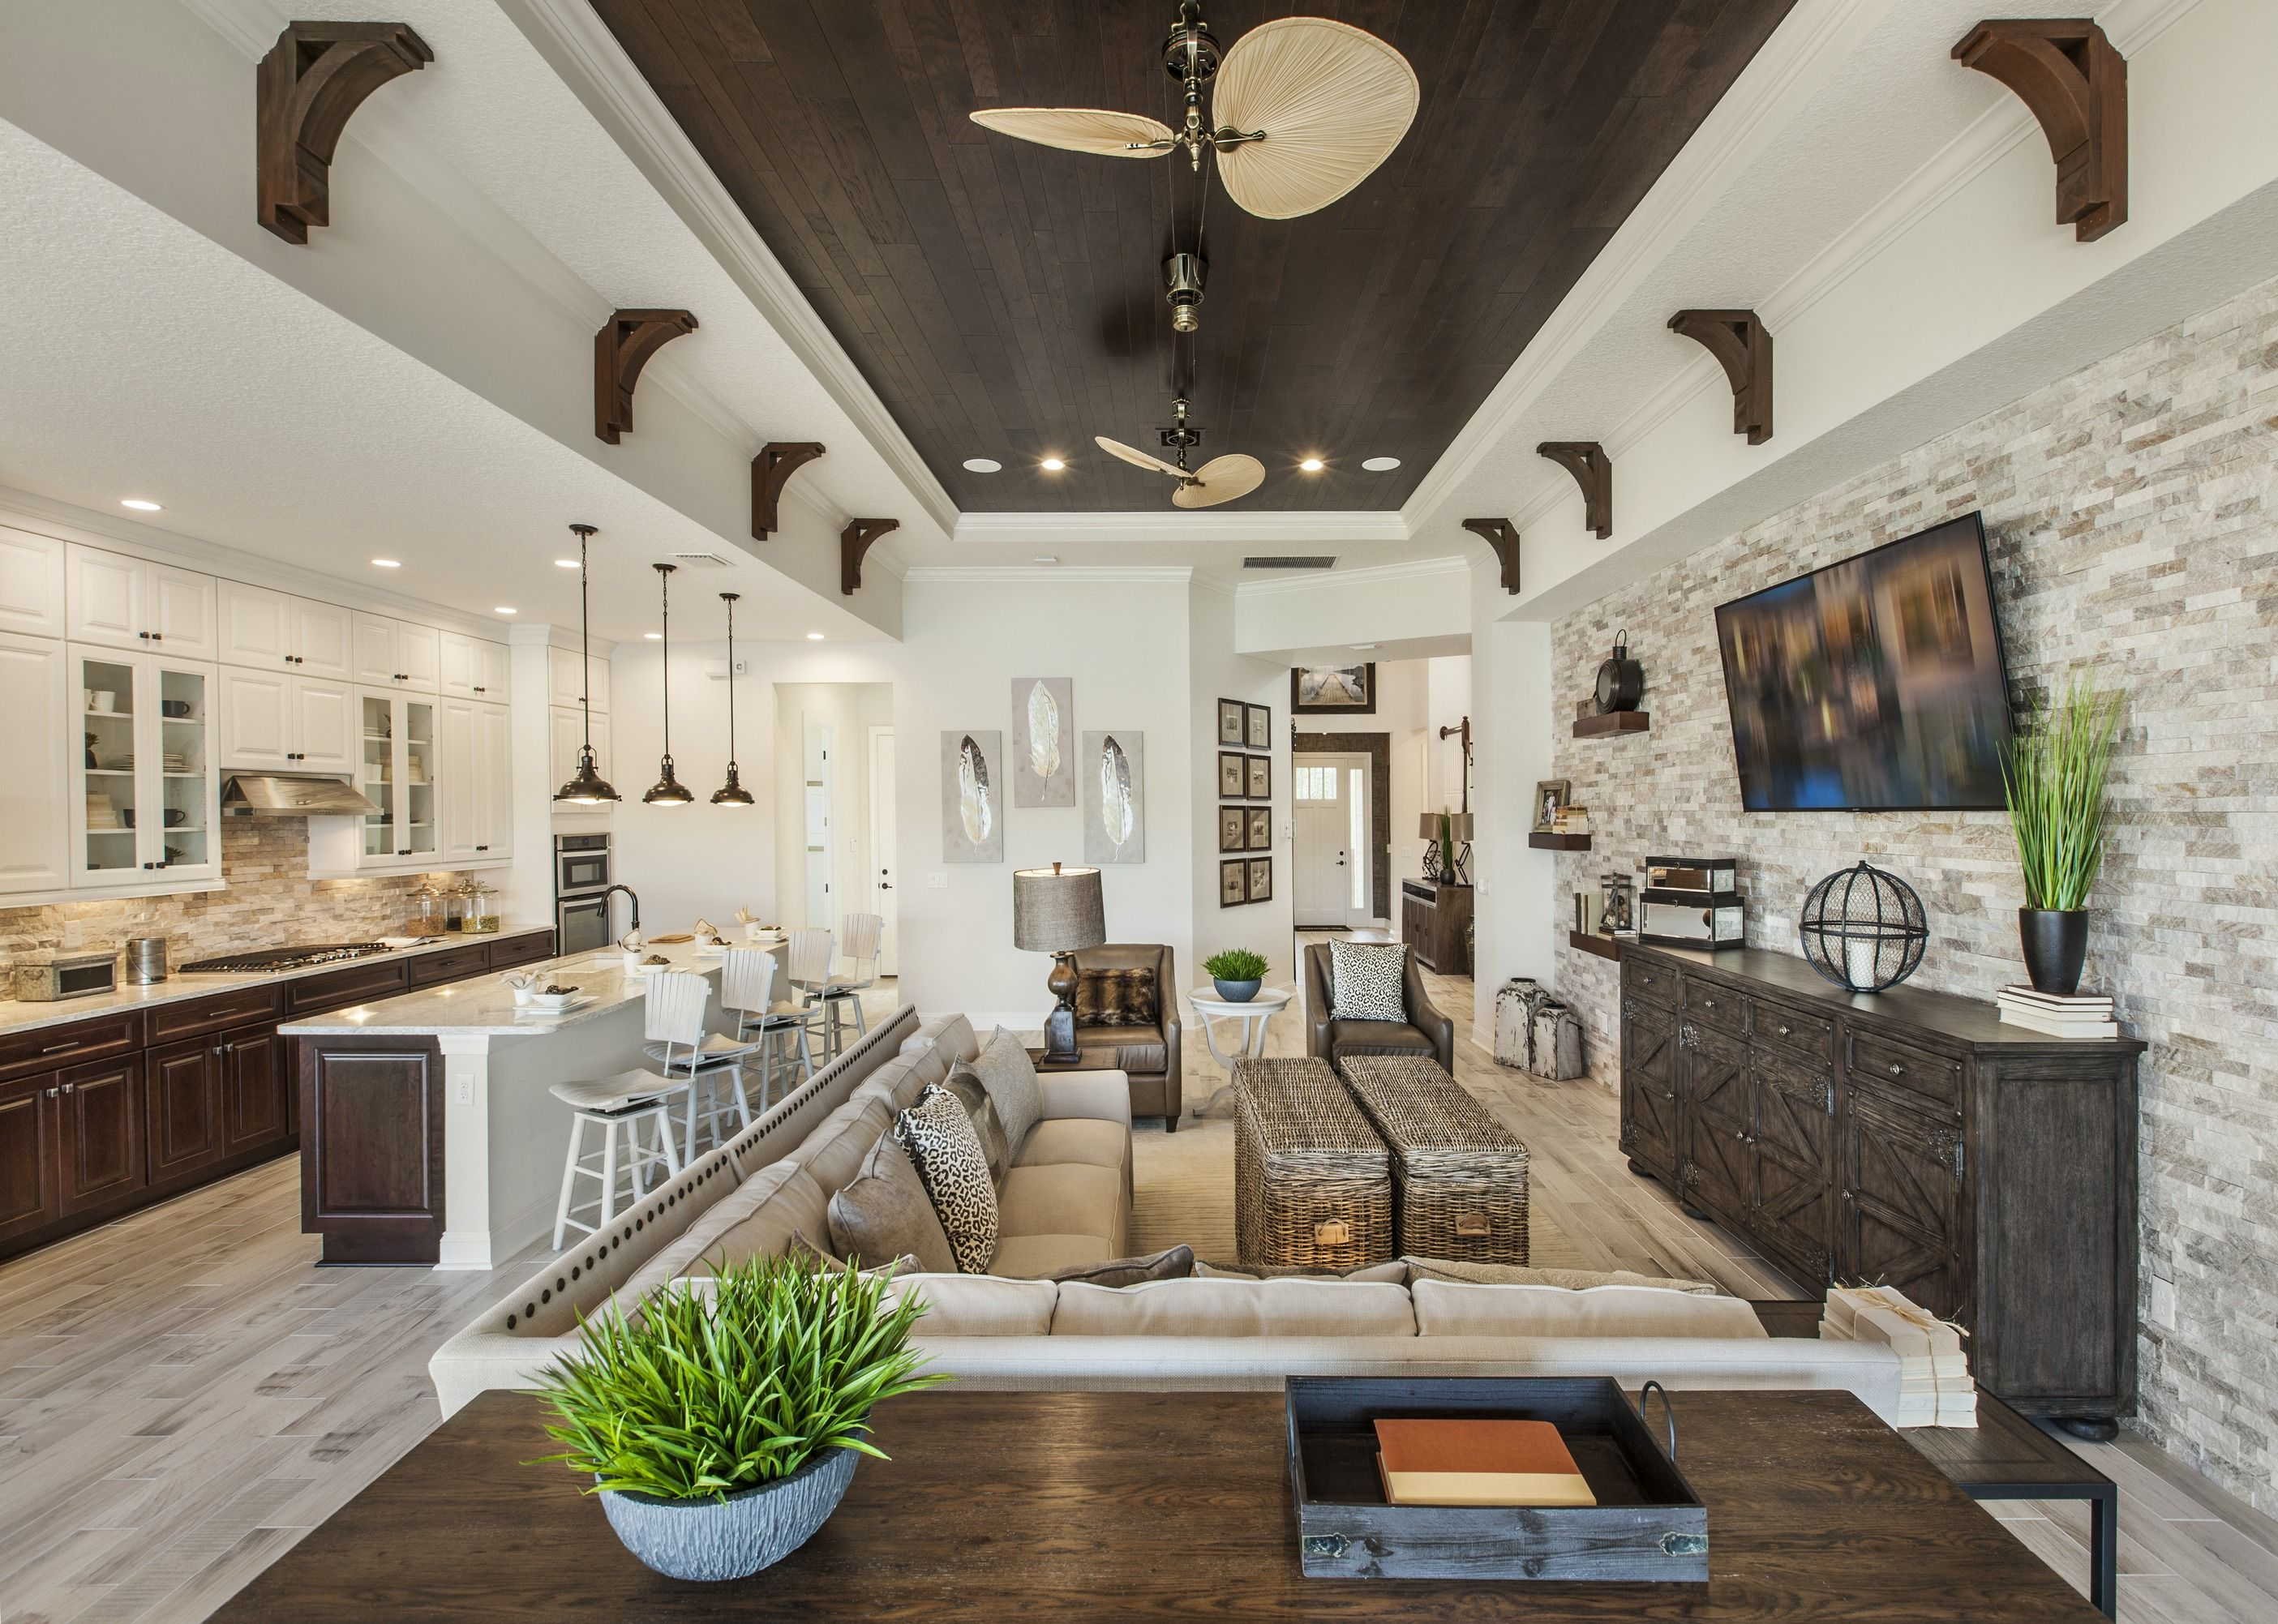 Craftsman Home Interior Design Concept indulge guests with sophisticated dishes in this open concept plan